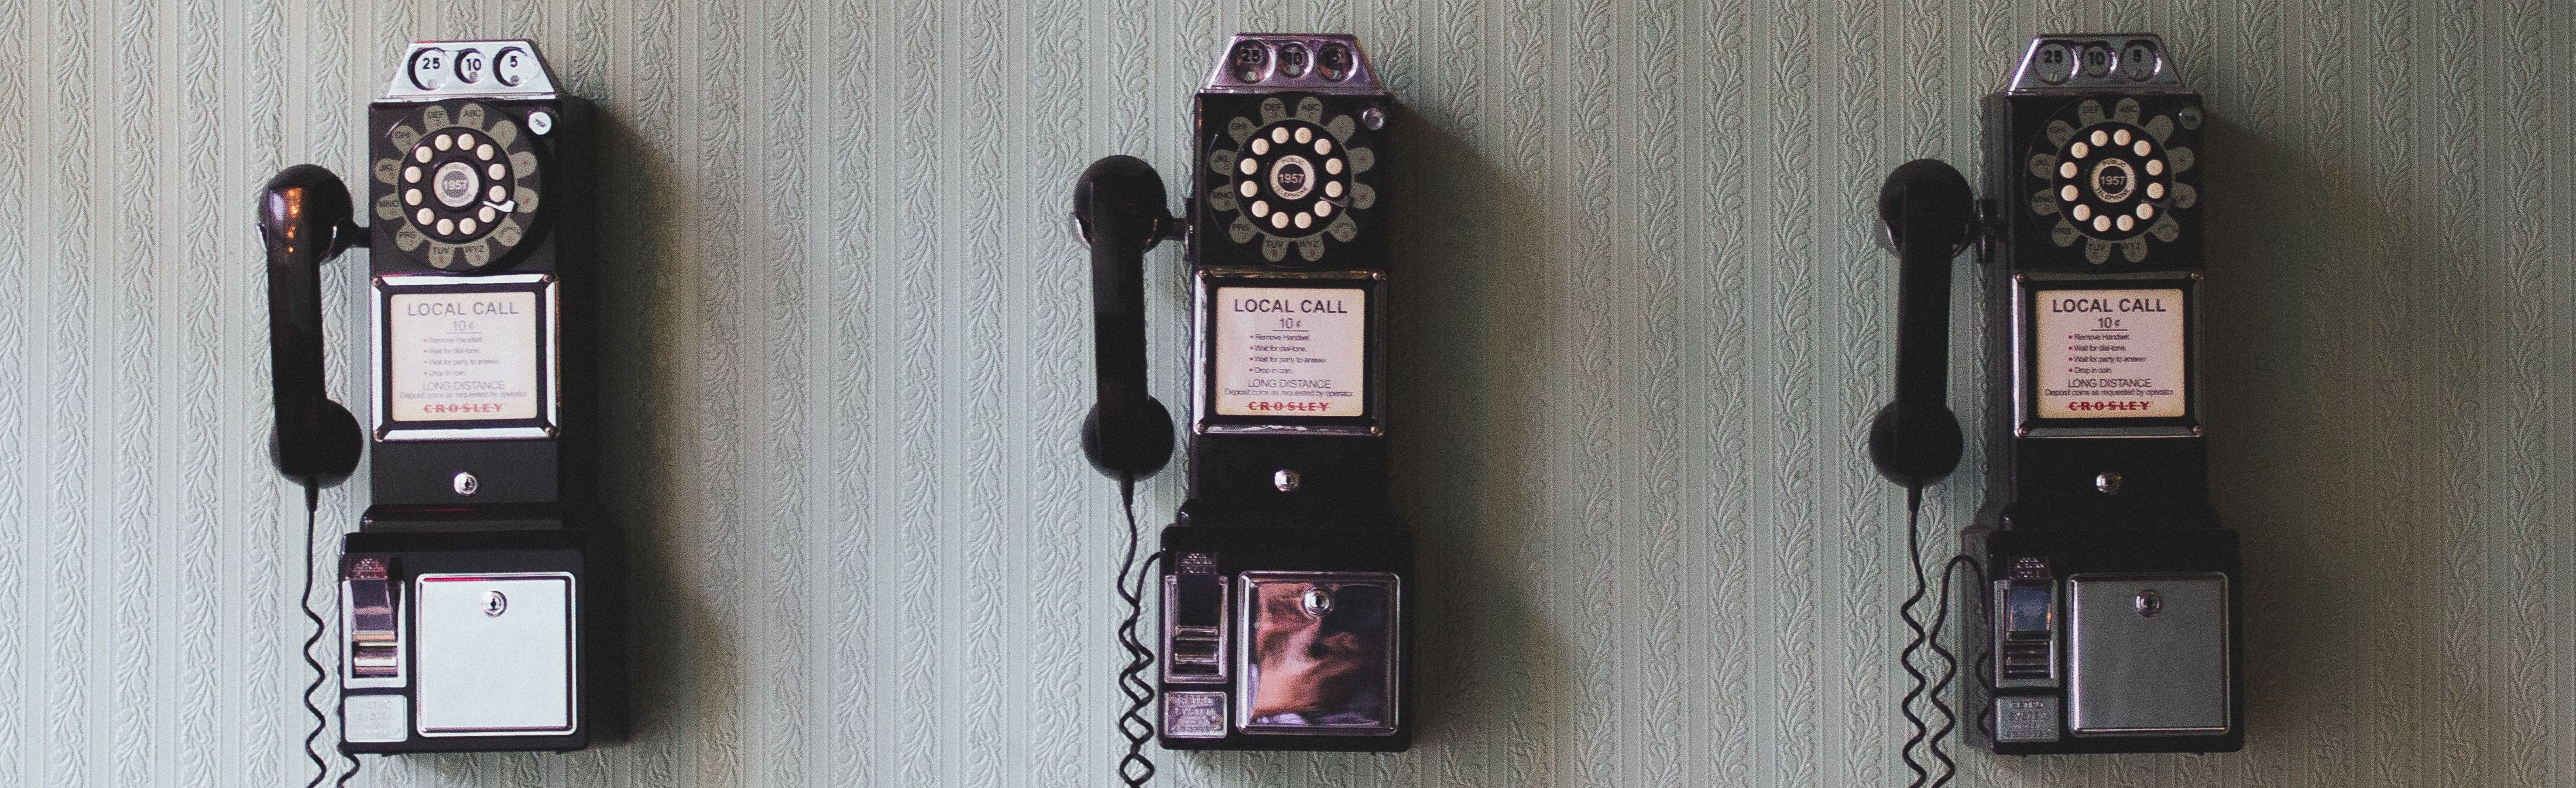 Three old rotary phones on a wall, for the purpose of contacting clients.